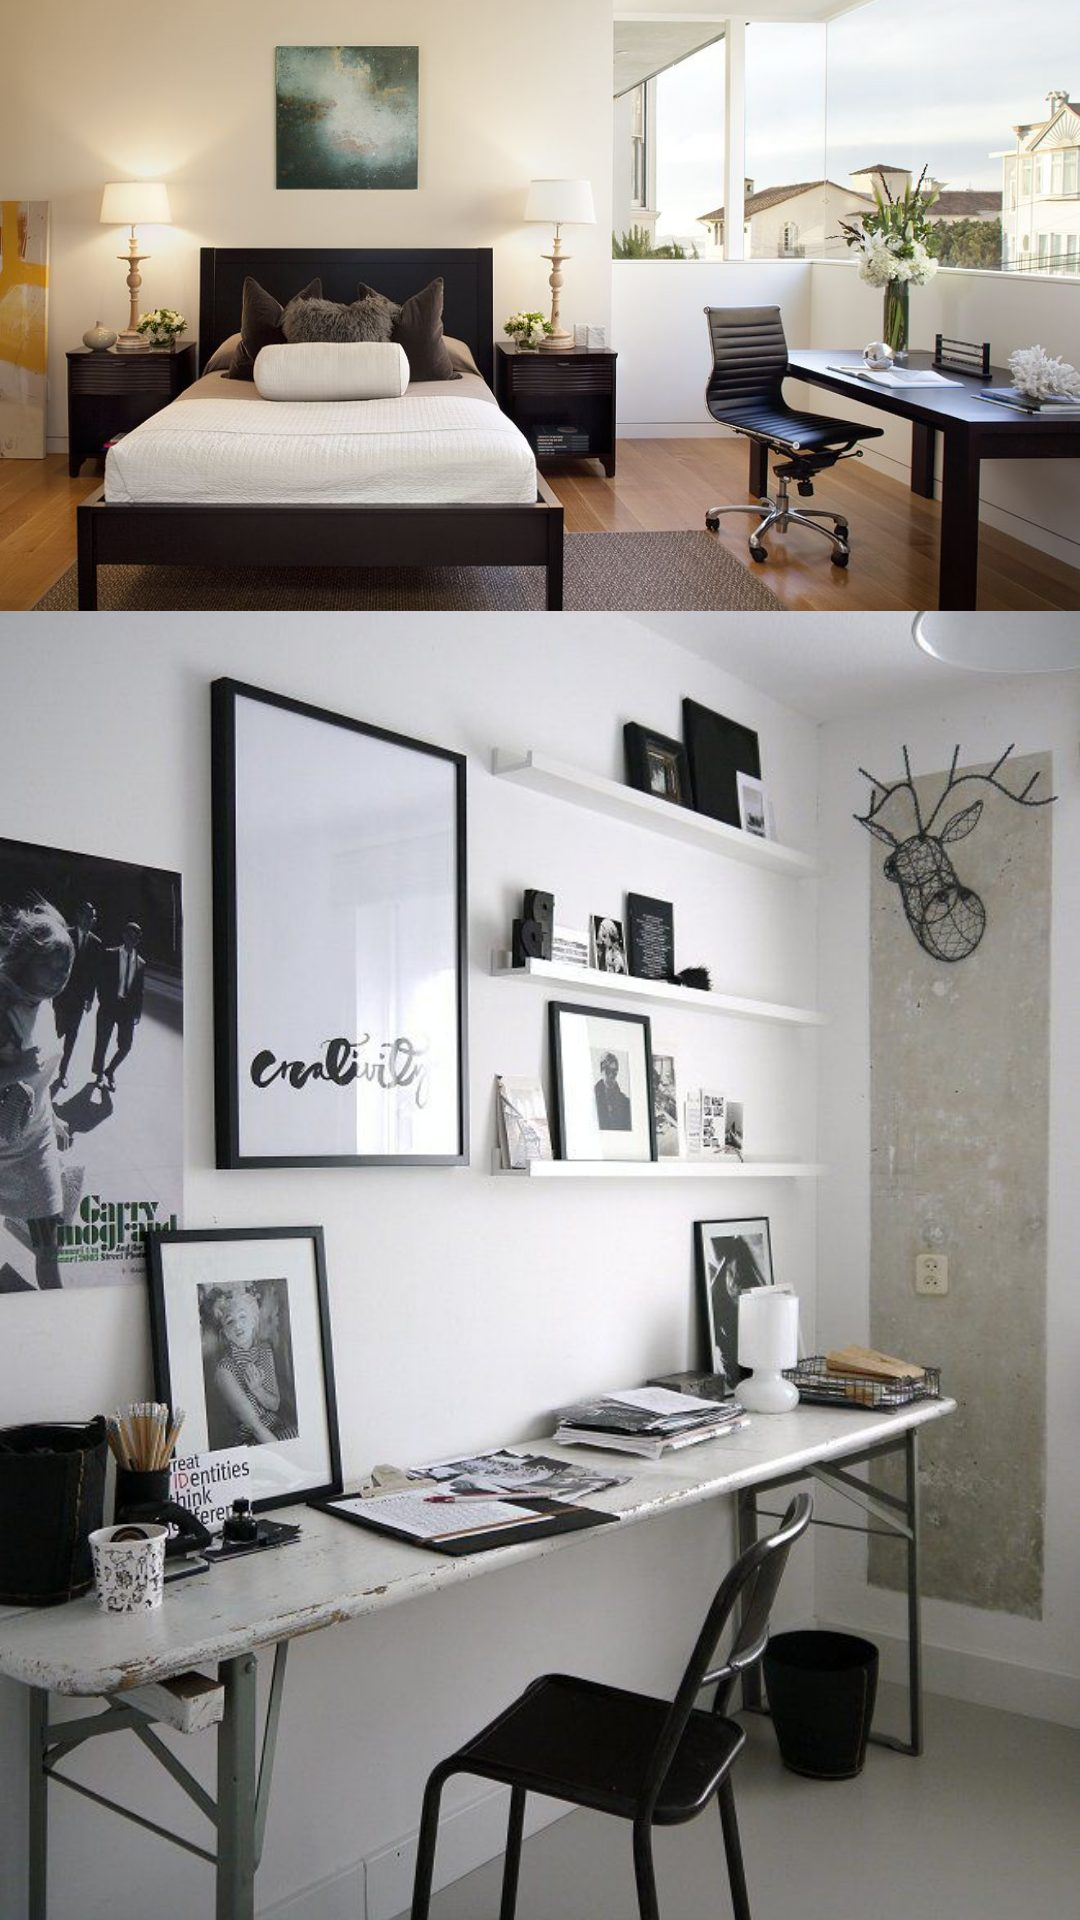 Bedroom with Working Space ideas